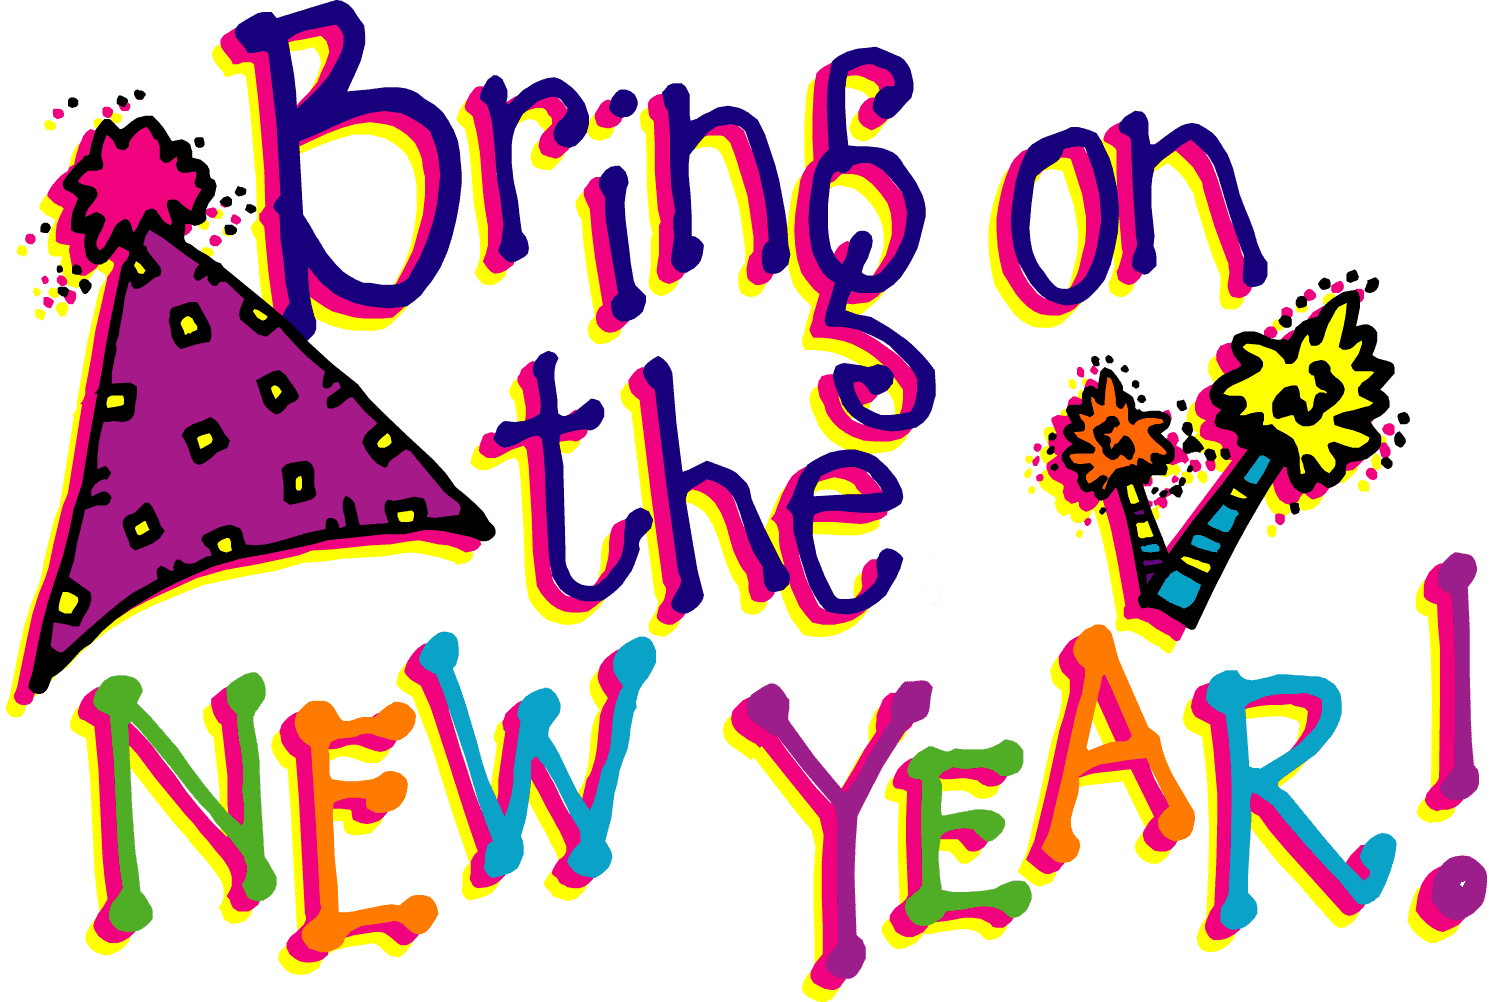 download-free-new-years-eve-clip-art